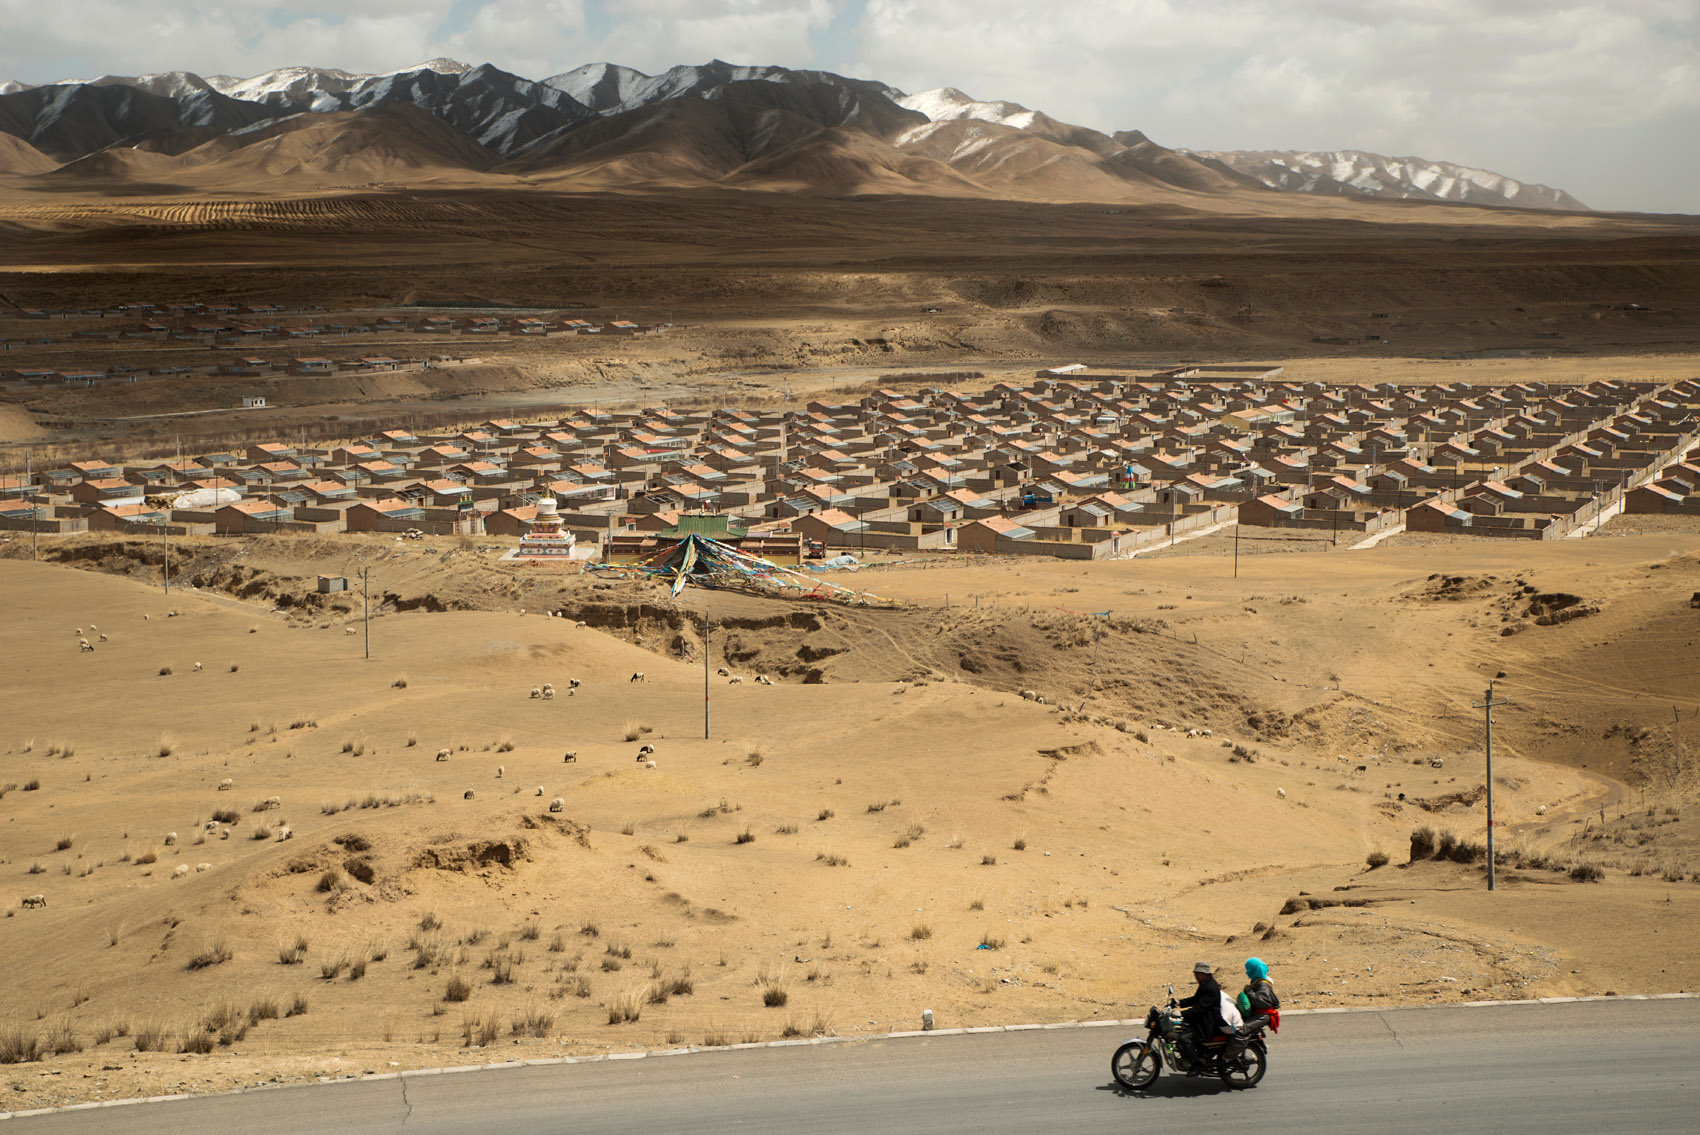 Rows of houses built for resettled nomads. In the name of environmental protection, the government has implemented a policy of nomads resettlement putting their traditional lifestyle and livelihood at risk. This policy, by curtailing pastoralism, officially aims at reducing the desertification threatening the Tibetan eco-system and other parts of China. Scientists are skeptical about its efficiency, arguing that pastoralism contributes to the sustainability of the grassland, while human rights groups criticise its high human cost.